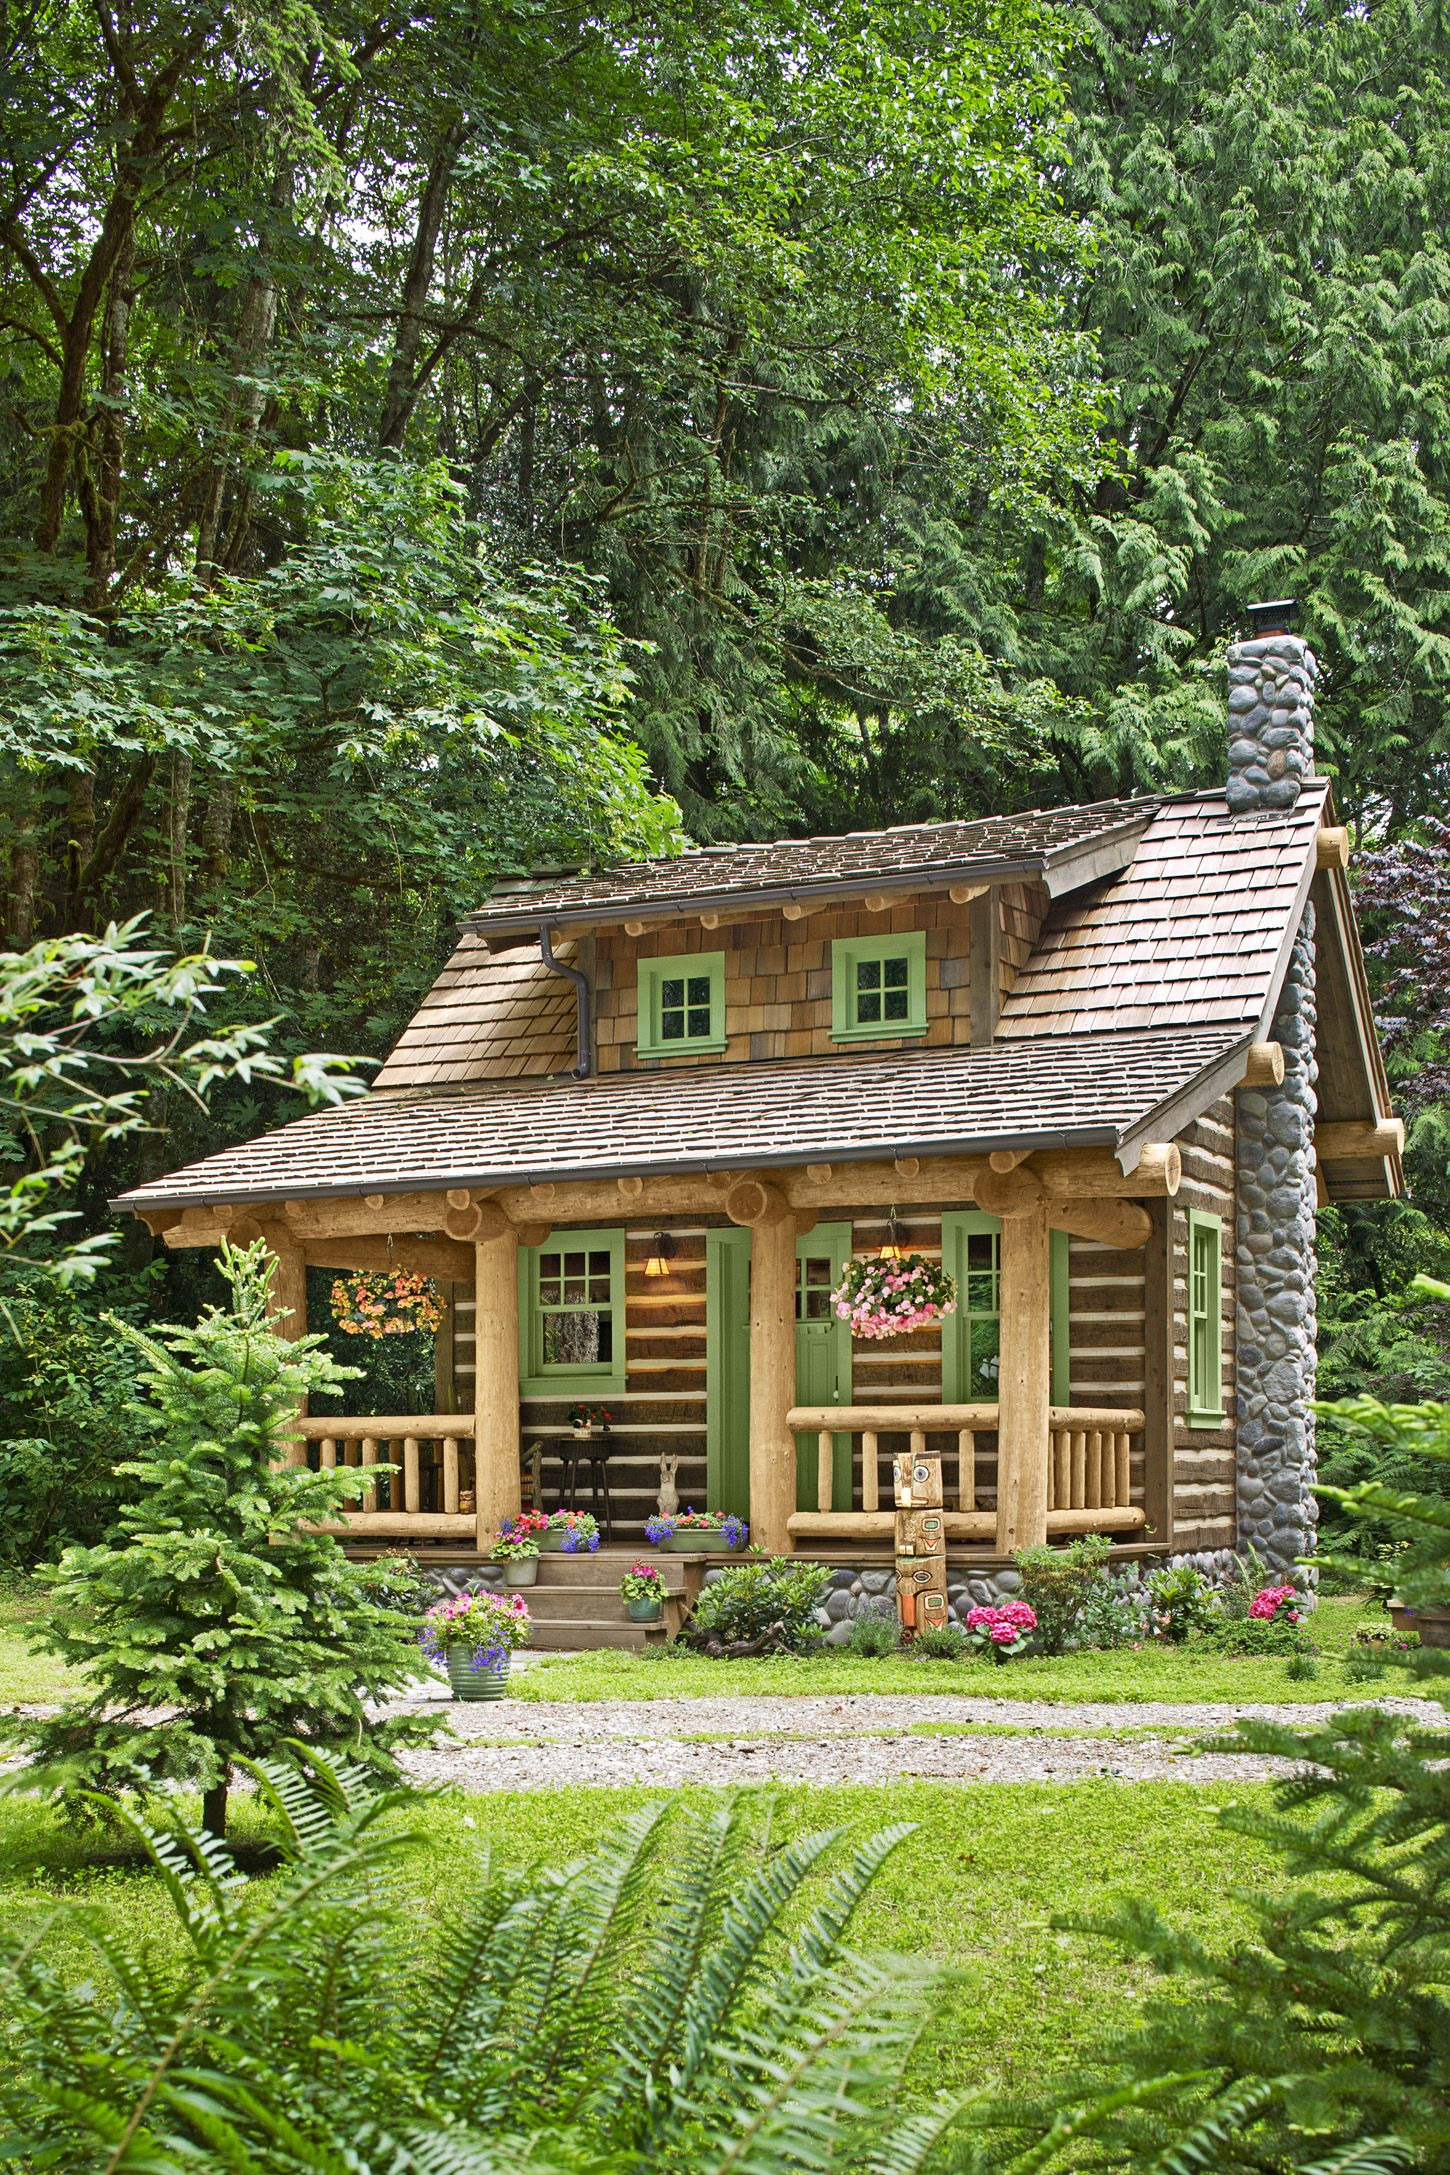 Most Beautiful Small House In the World Lovely 86 Best Tiny Houses 2020 Small House & Plans